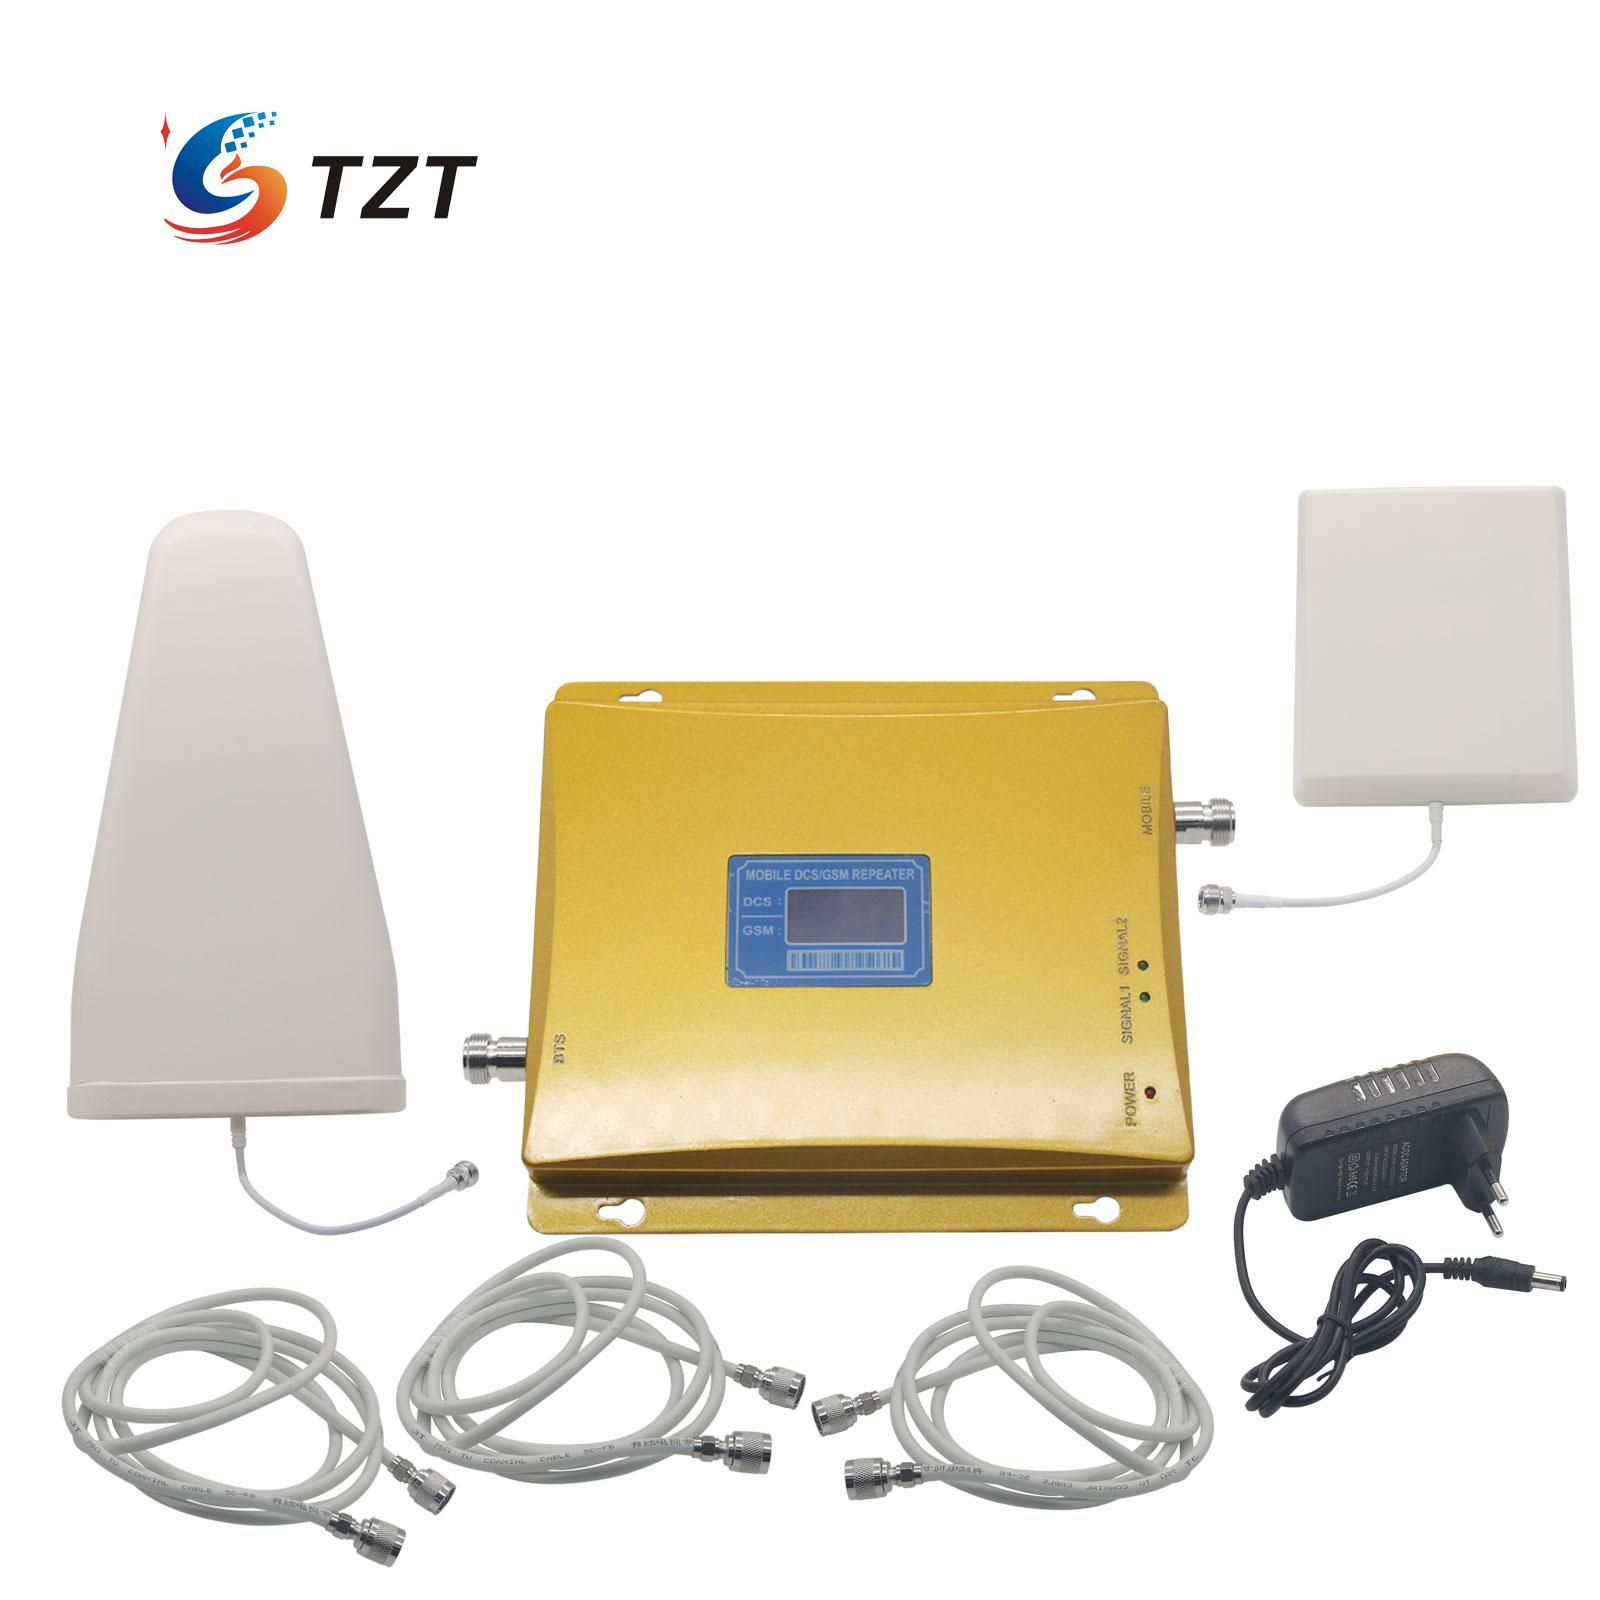 LCD Display GSM 900MHz 4G LTE DCS1800 MHz Dual Band Mobile Signal Amplifier Repeater(China (Mainland))